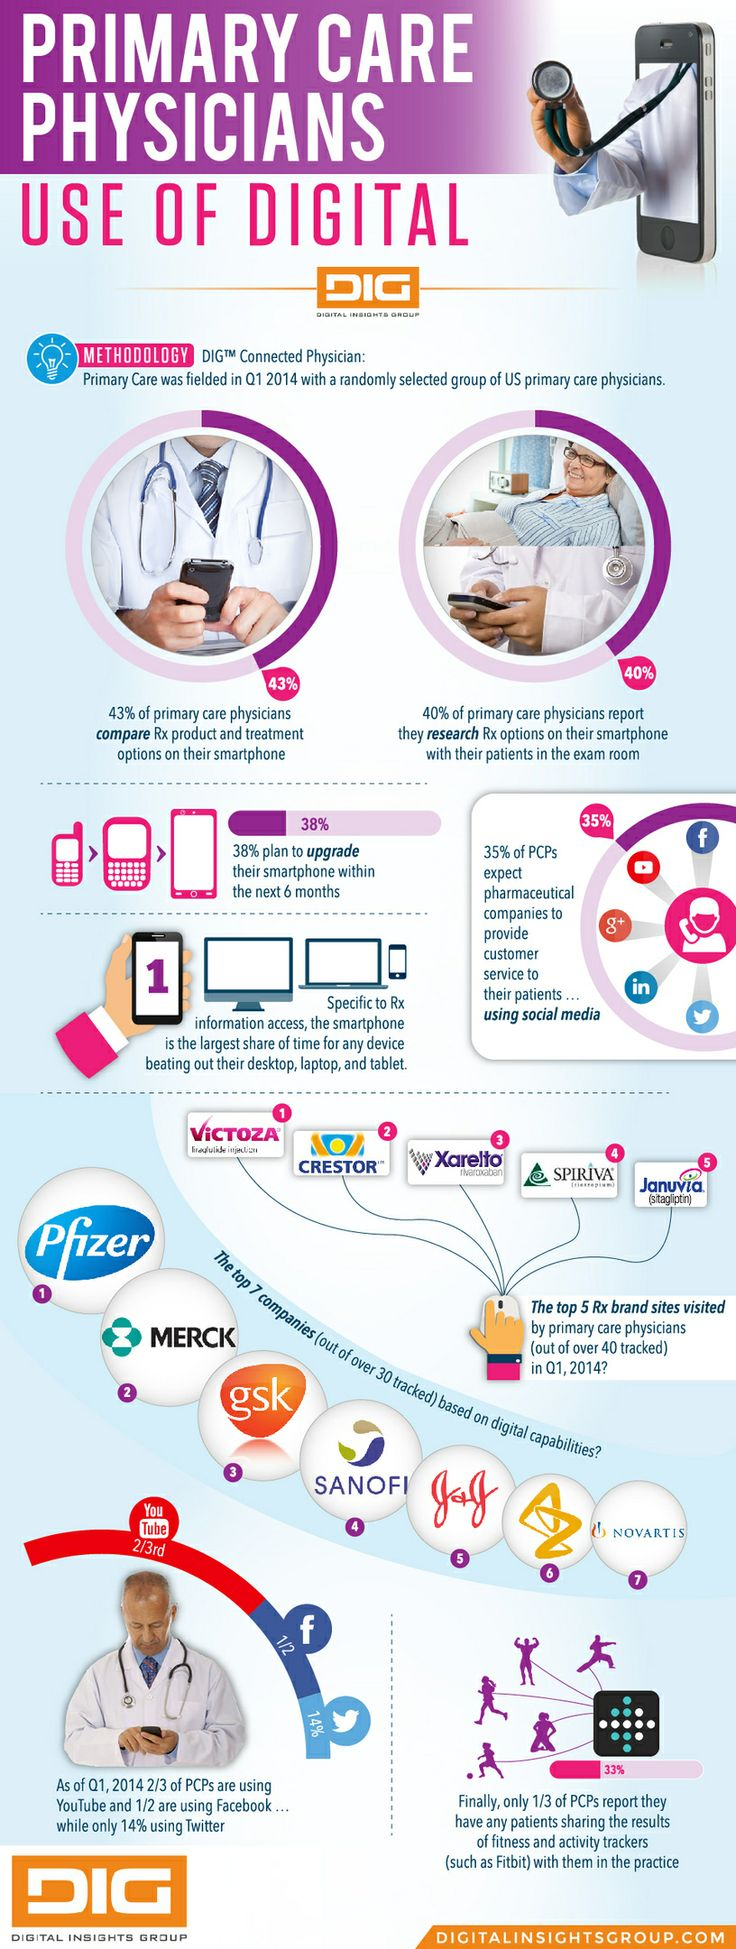 primary care #physicians use of #digitalhealth #infographic